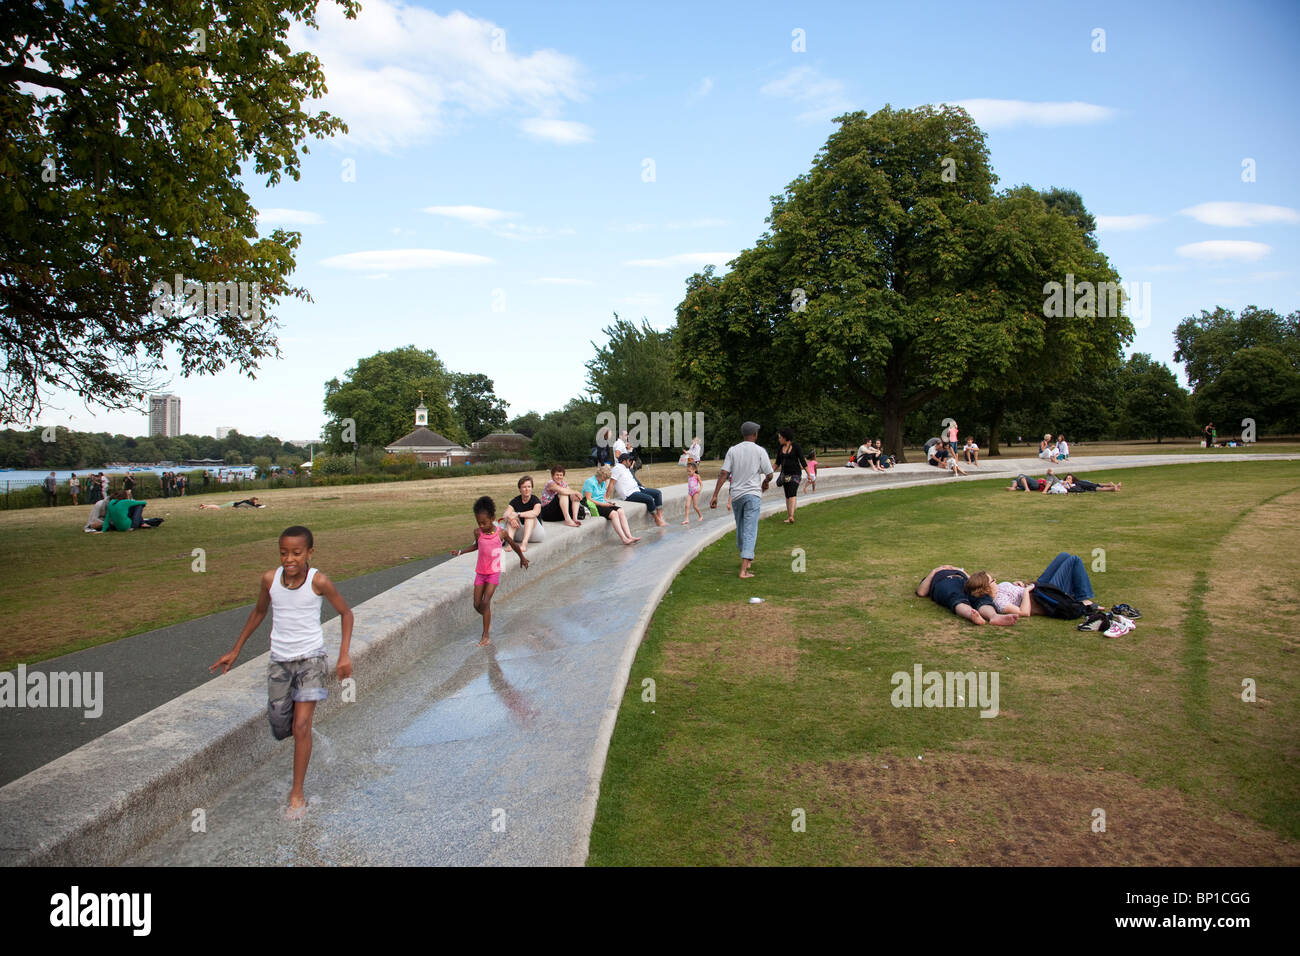 diana princess of wales memorial fountain kensington gardens stock photo alamy https www alamy com stock photo diana princess of wales memorial fountain kensington gardens london 30764624 html